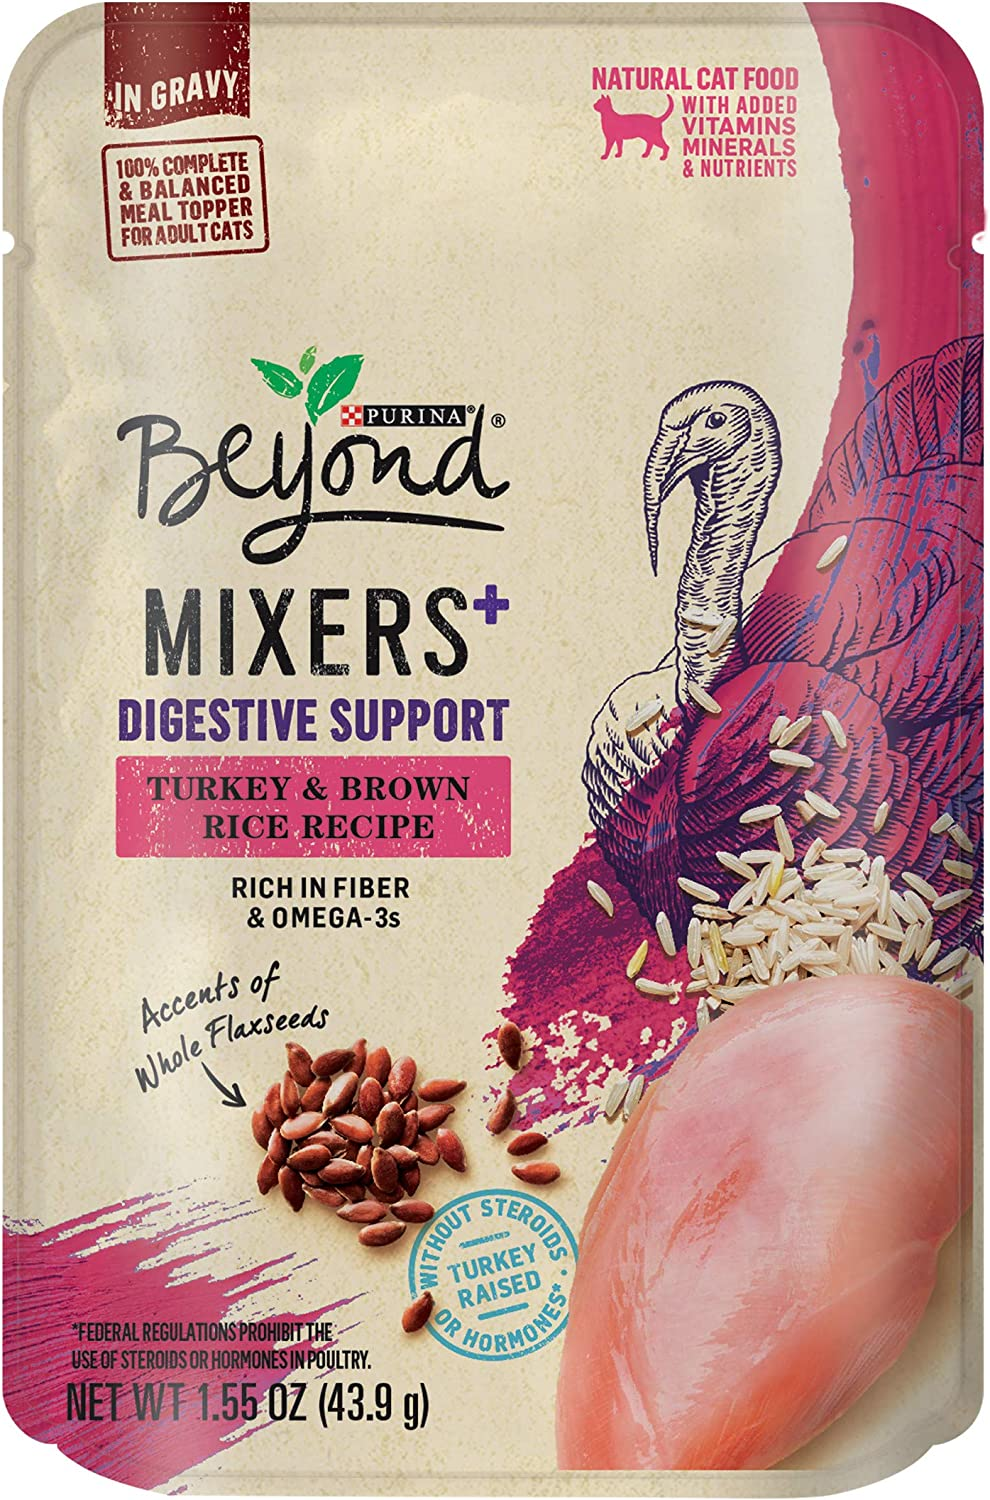 Purina Beyond Grain Free, Natural, Adult Wet Cat Food in Gravy & Wet Cat Food Toppers (Packaging May Vary)